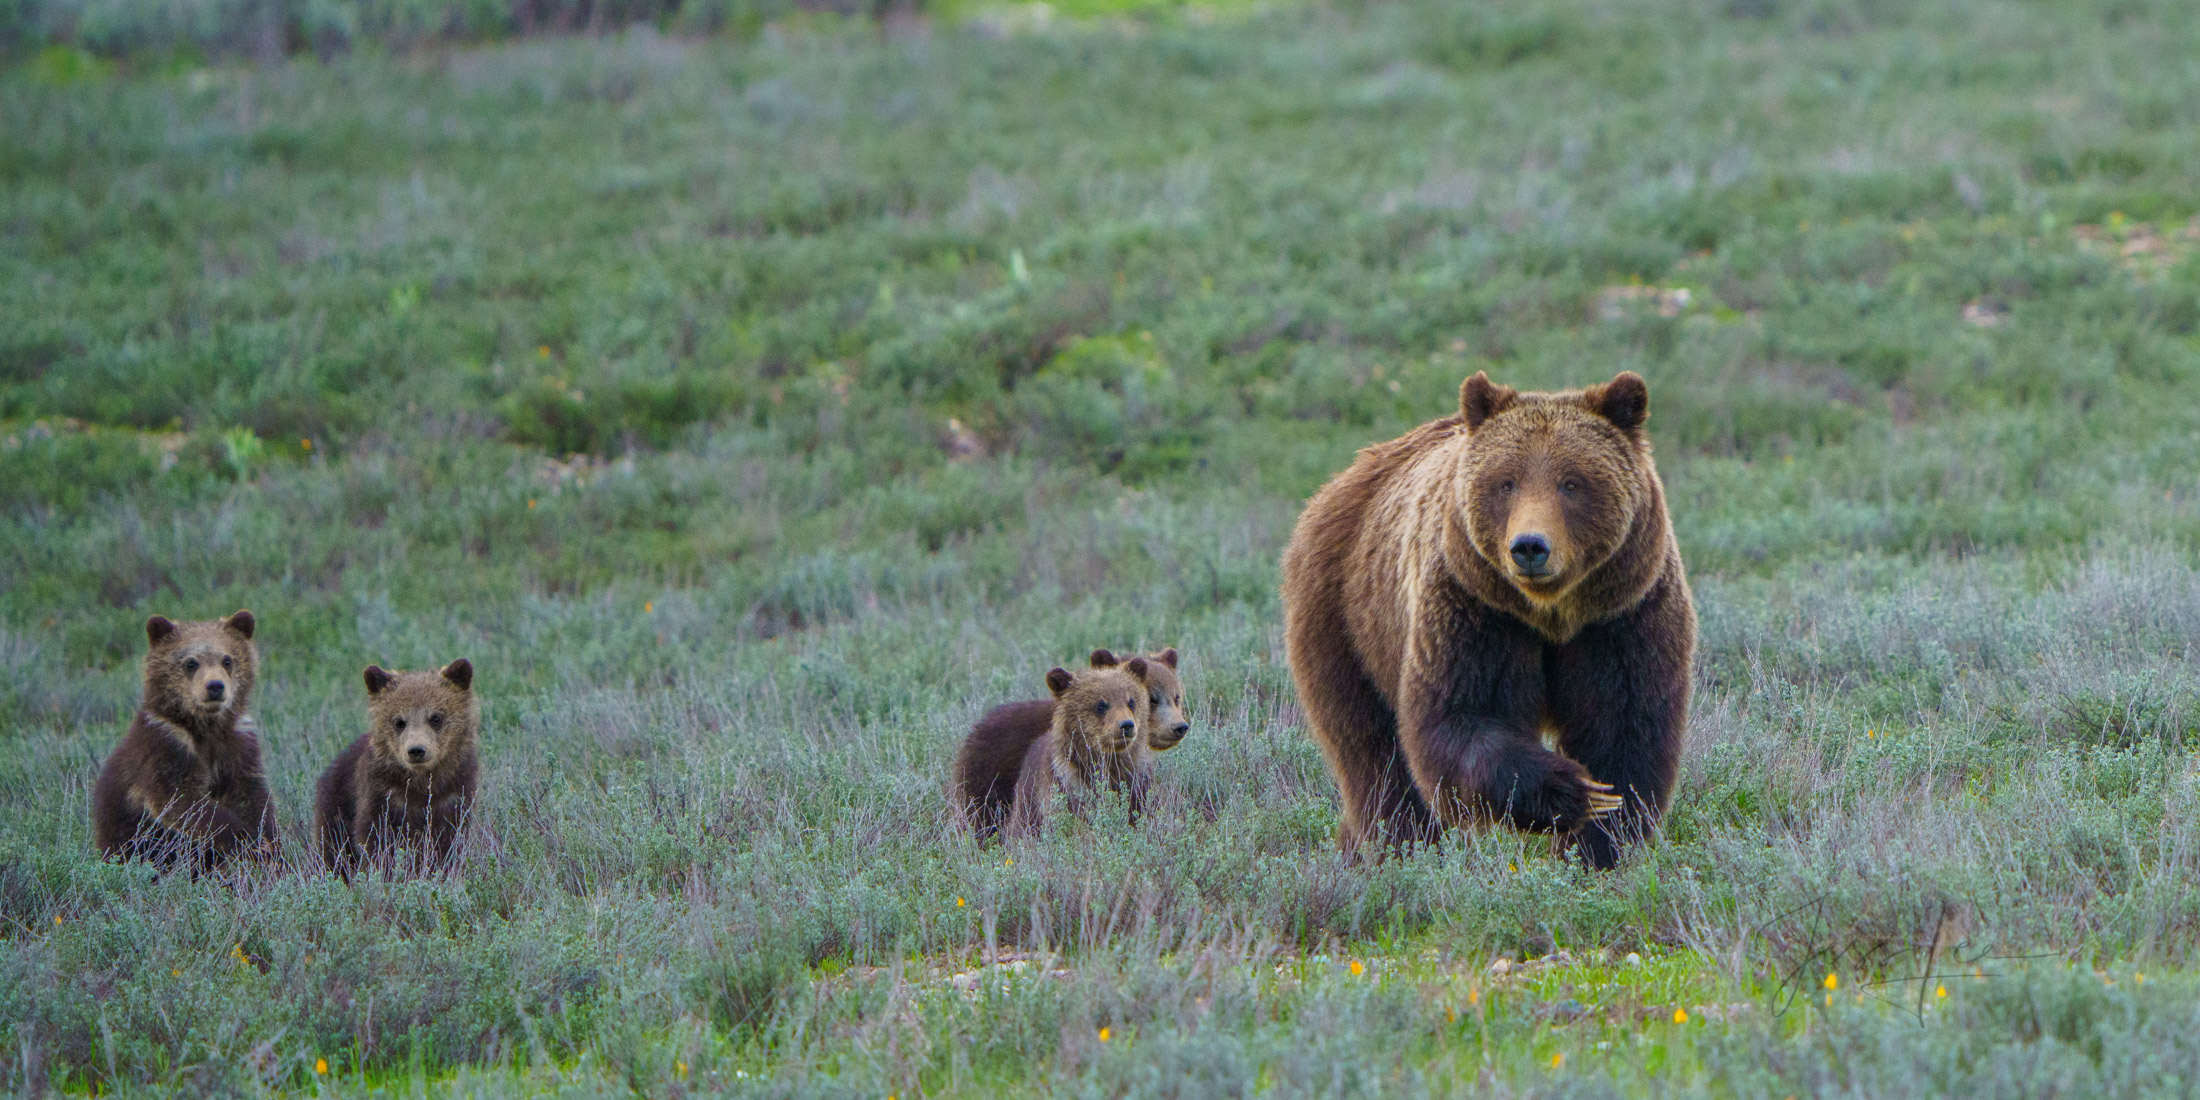 Grand Teton Grizzly 399 hunting with her spring cubs a limited edition of 500 prints.